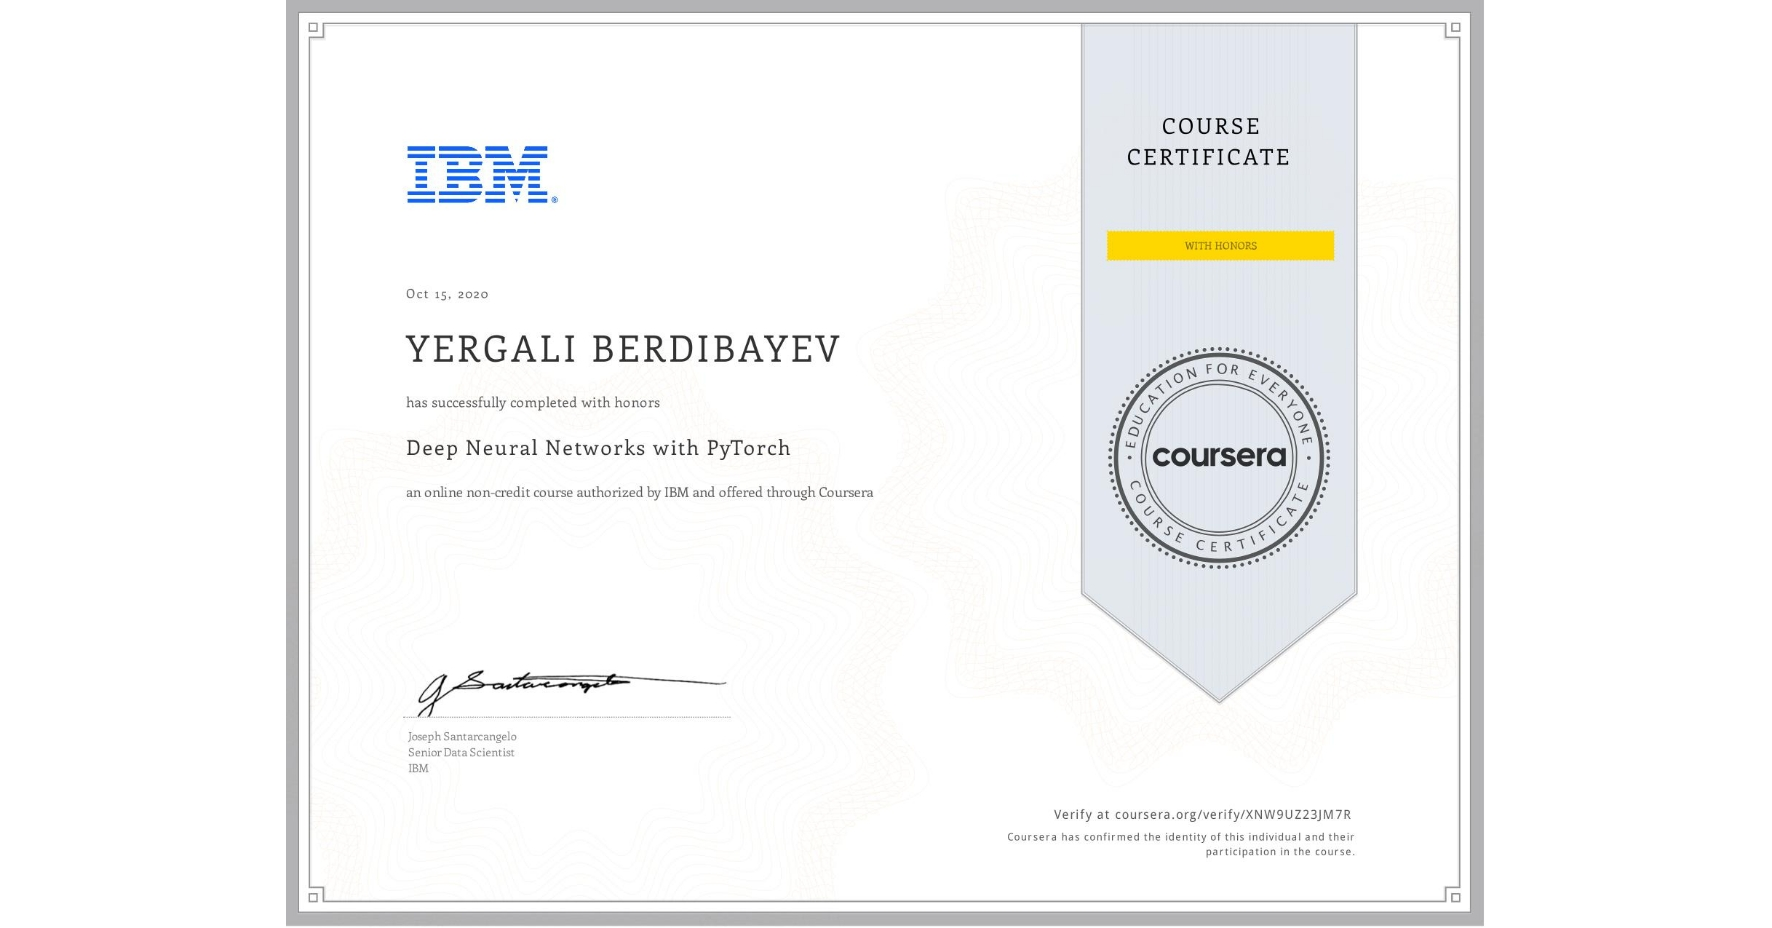 View certificate for Yergali Berdibayev, Deep Neural Networks with PyTorch, an online non-credit course authorized by IBM and offered through Coursera